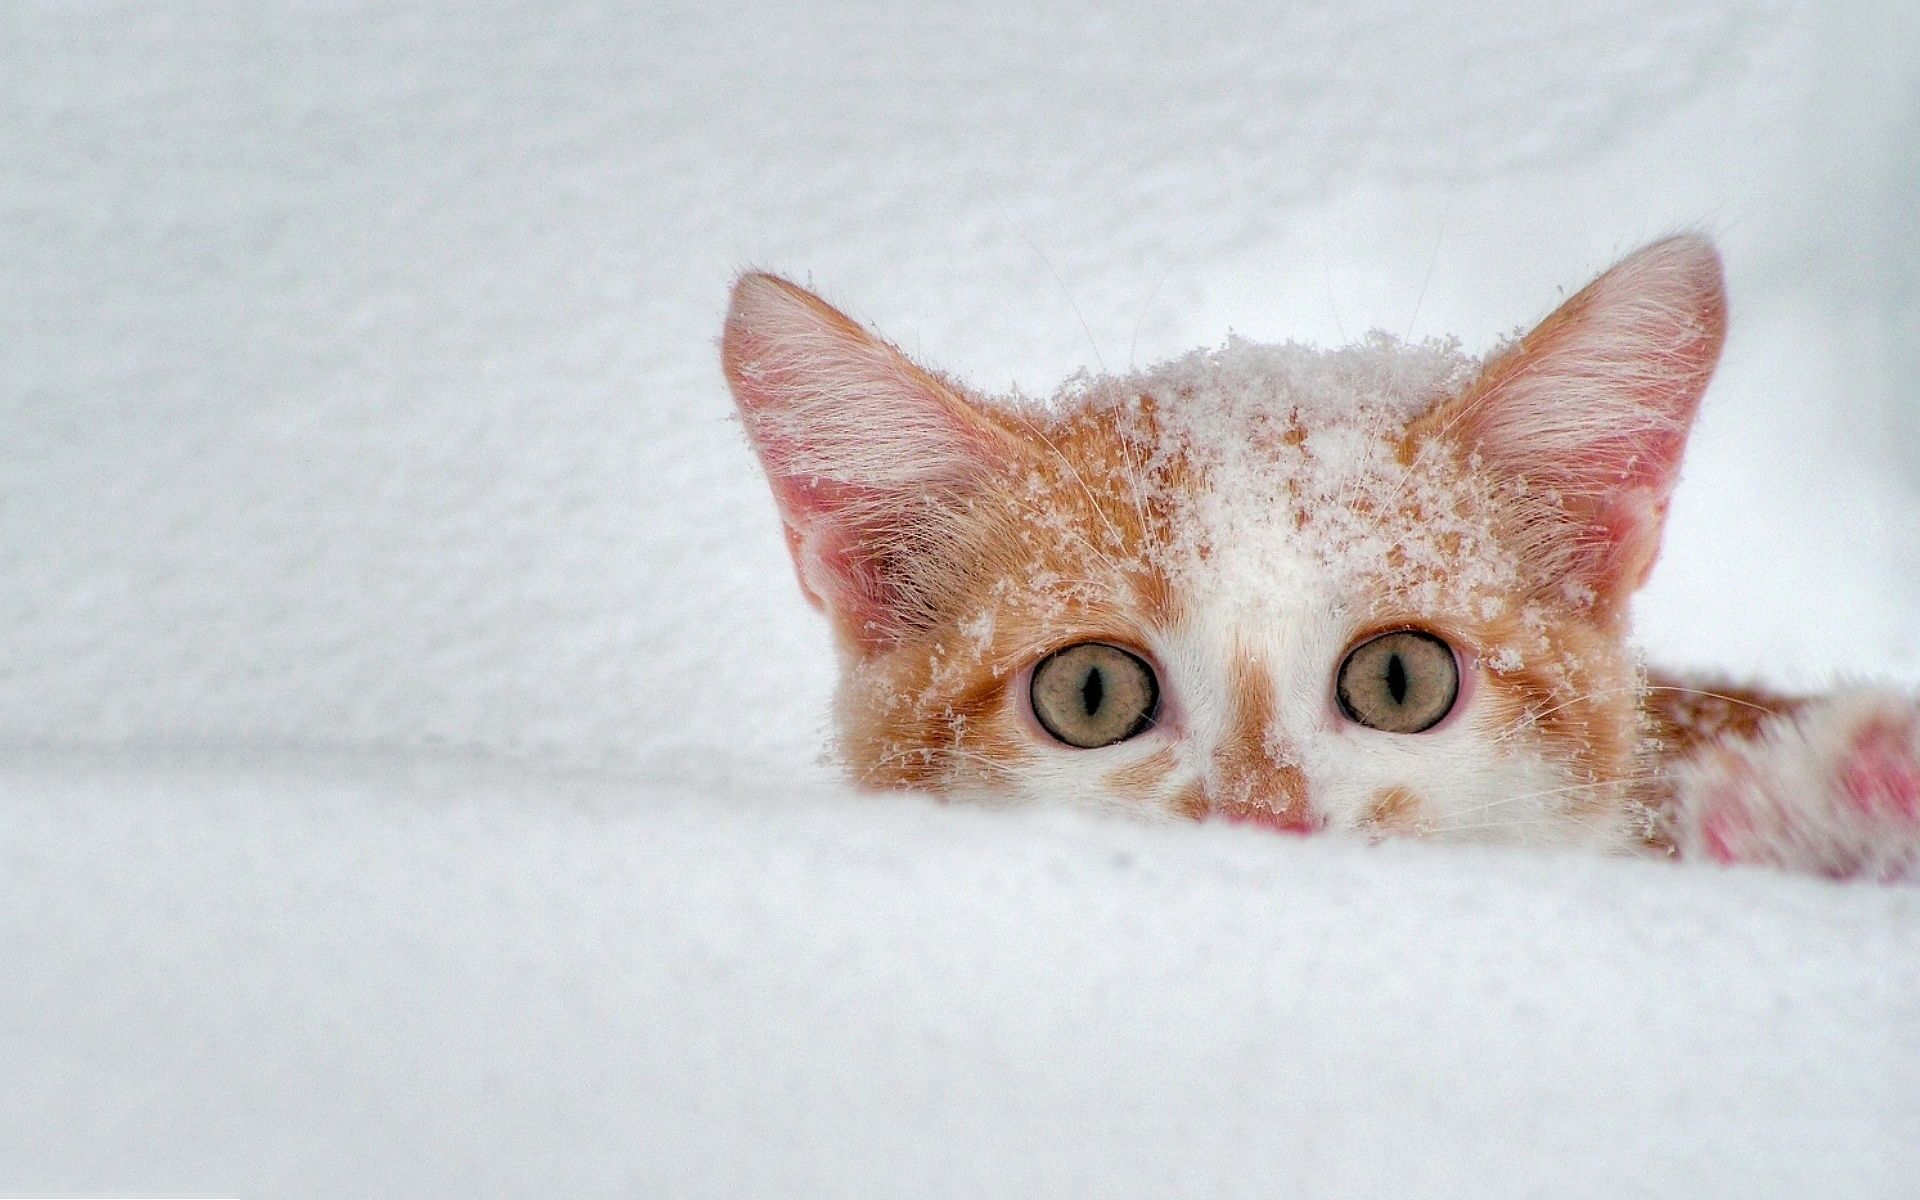 Cat Snow Scary Cats Winter Animals Crazy Cats